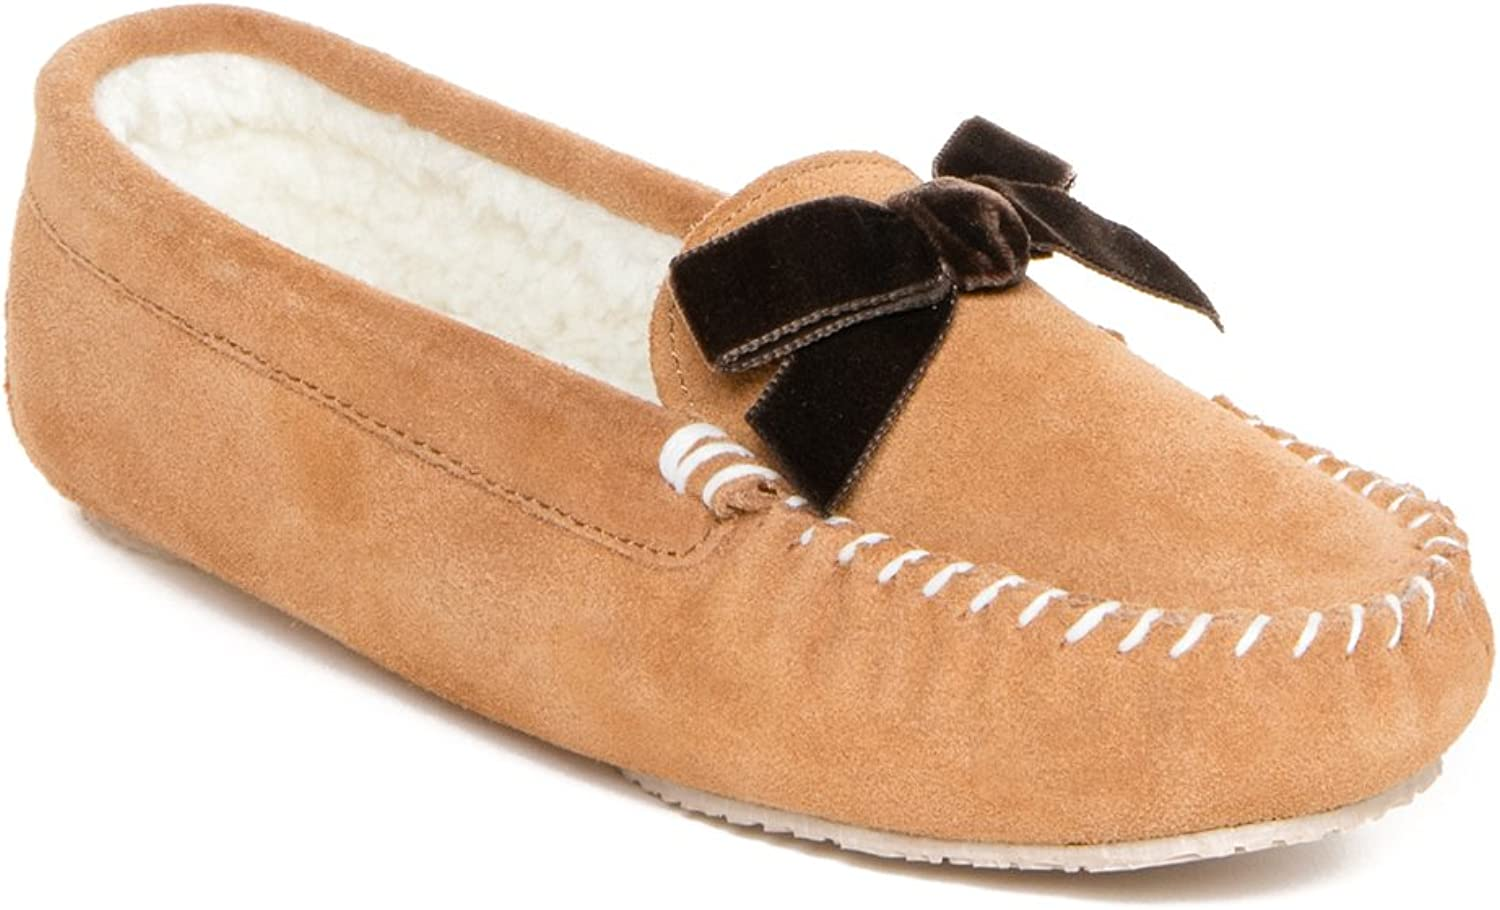 Patricia Green Women's Haley Slippers